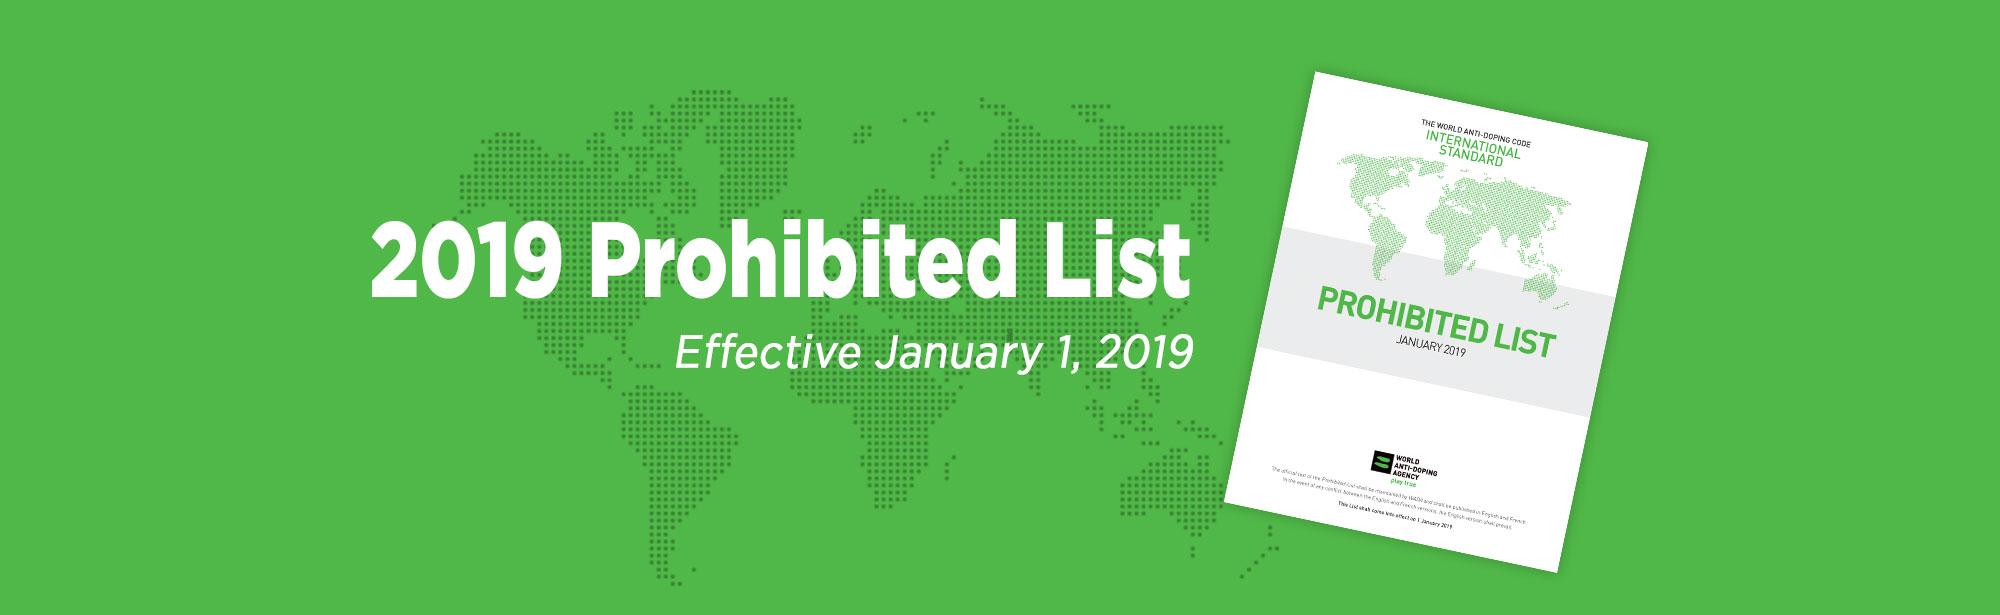 prohibited list 2019